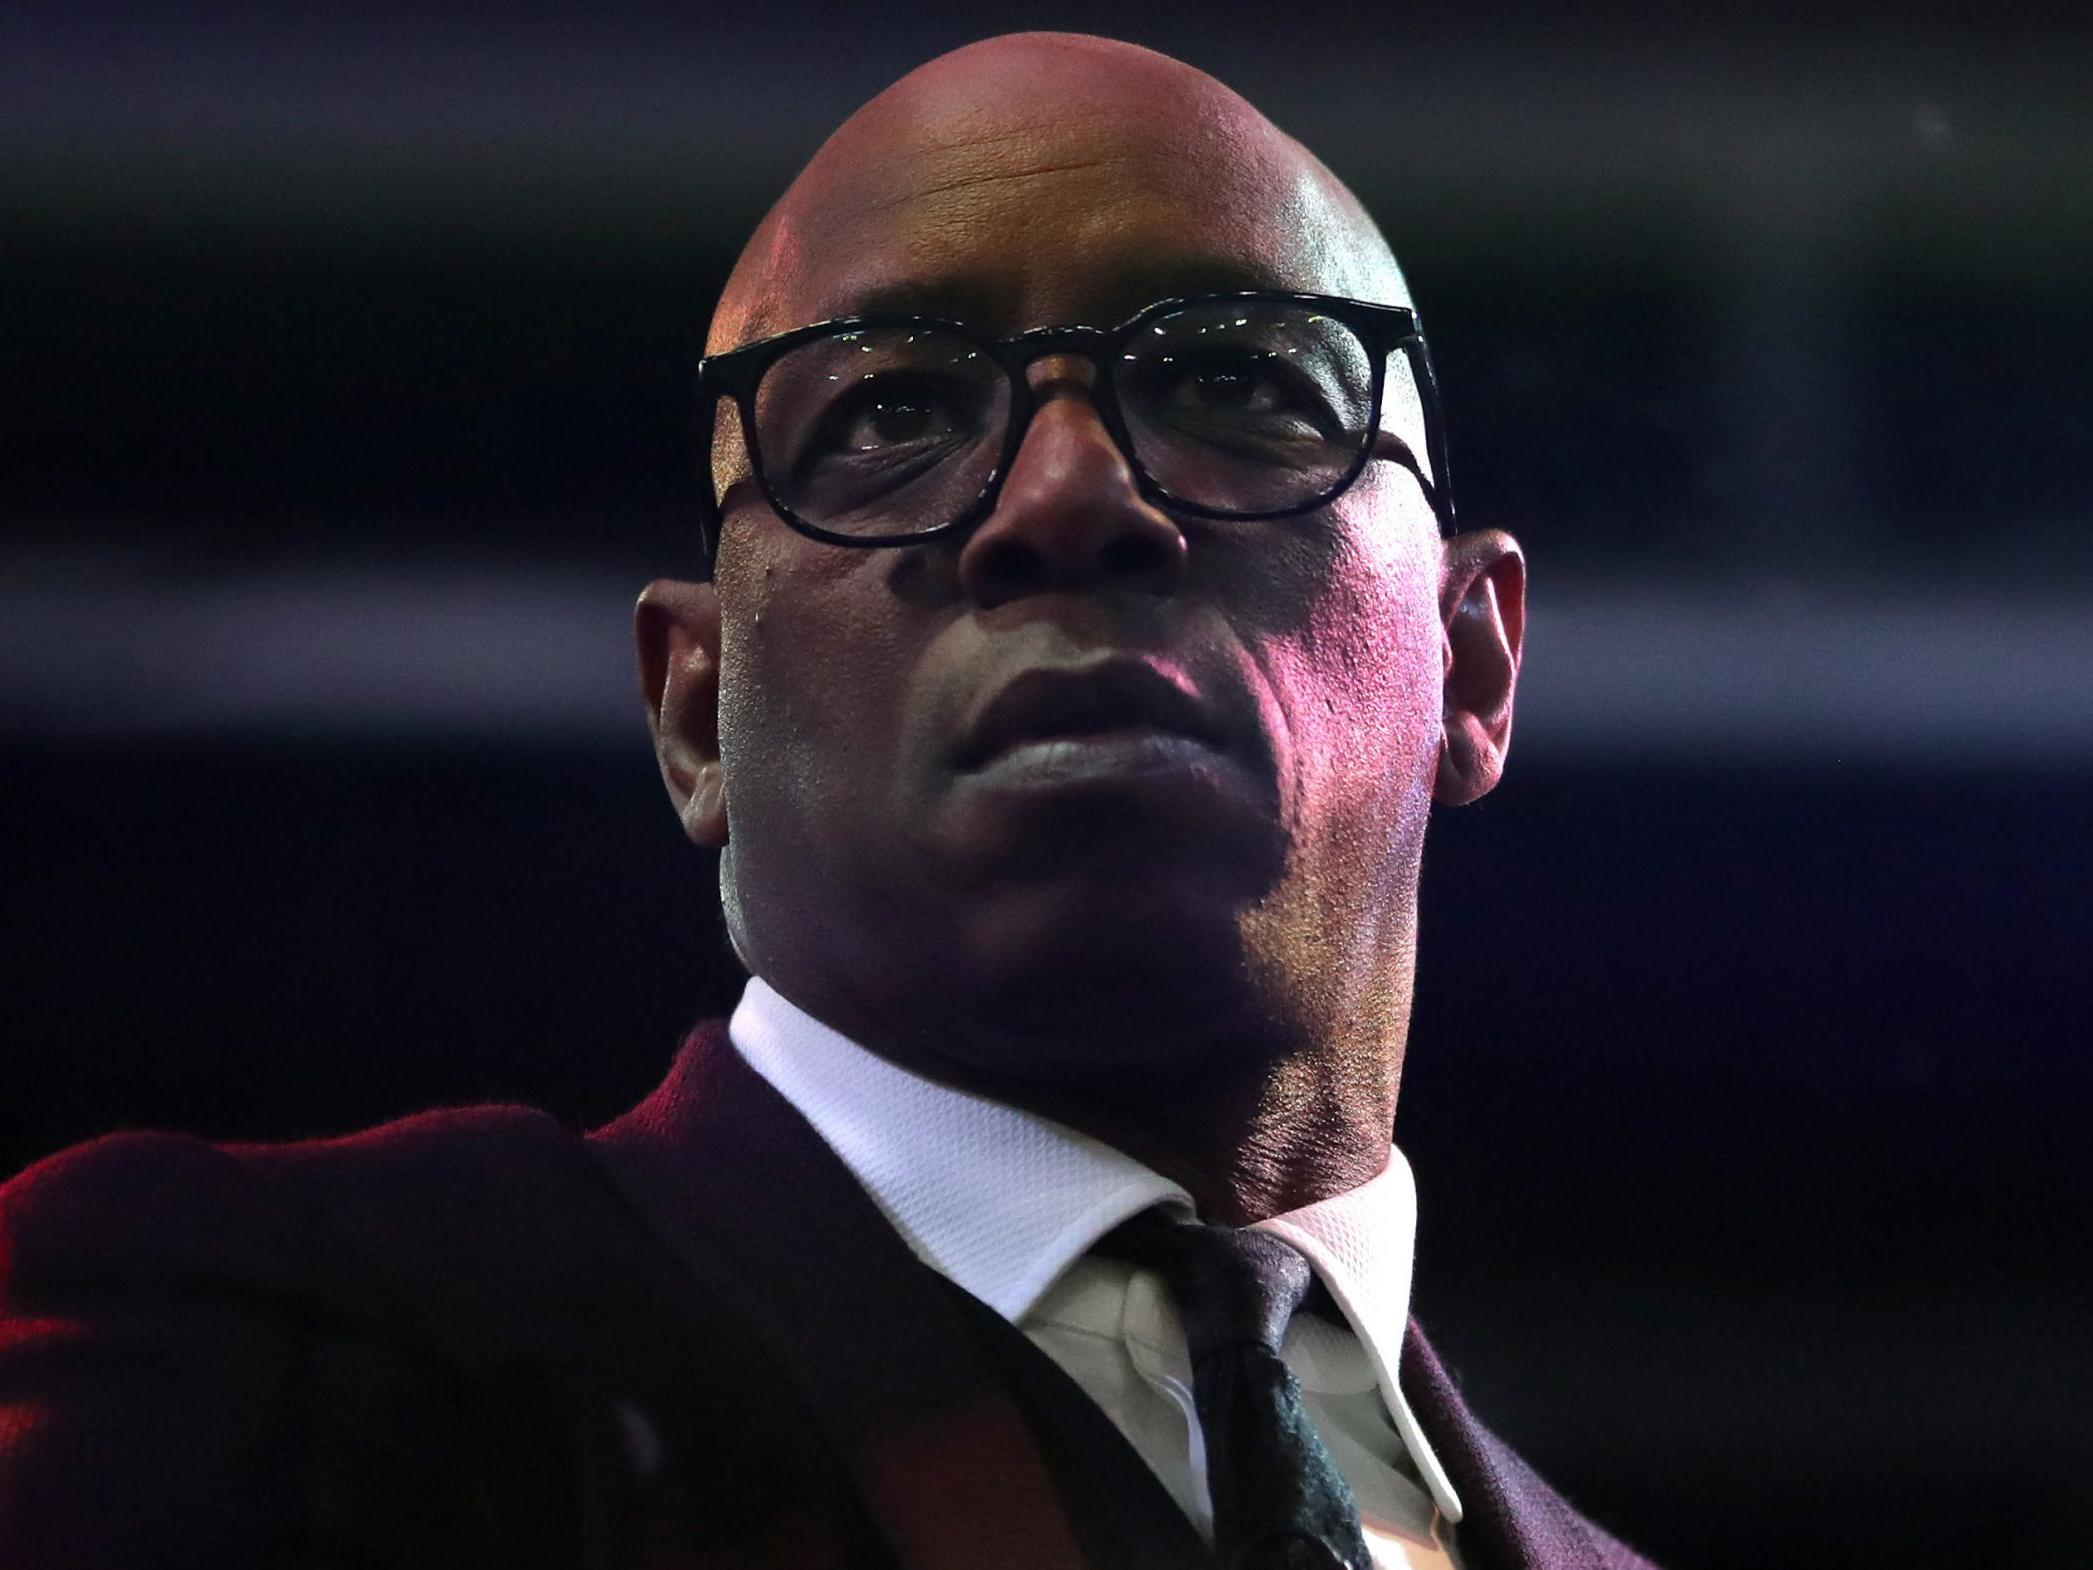 Ian Wright 'fighting all the way' after being sent 'relentless' racist abuse on Instagram